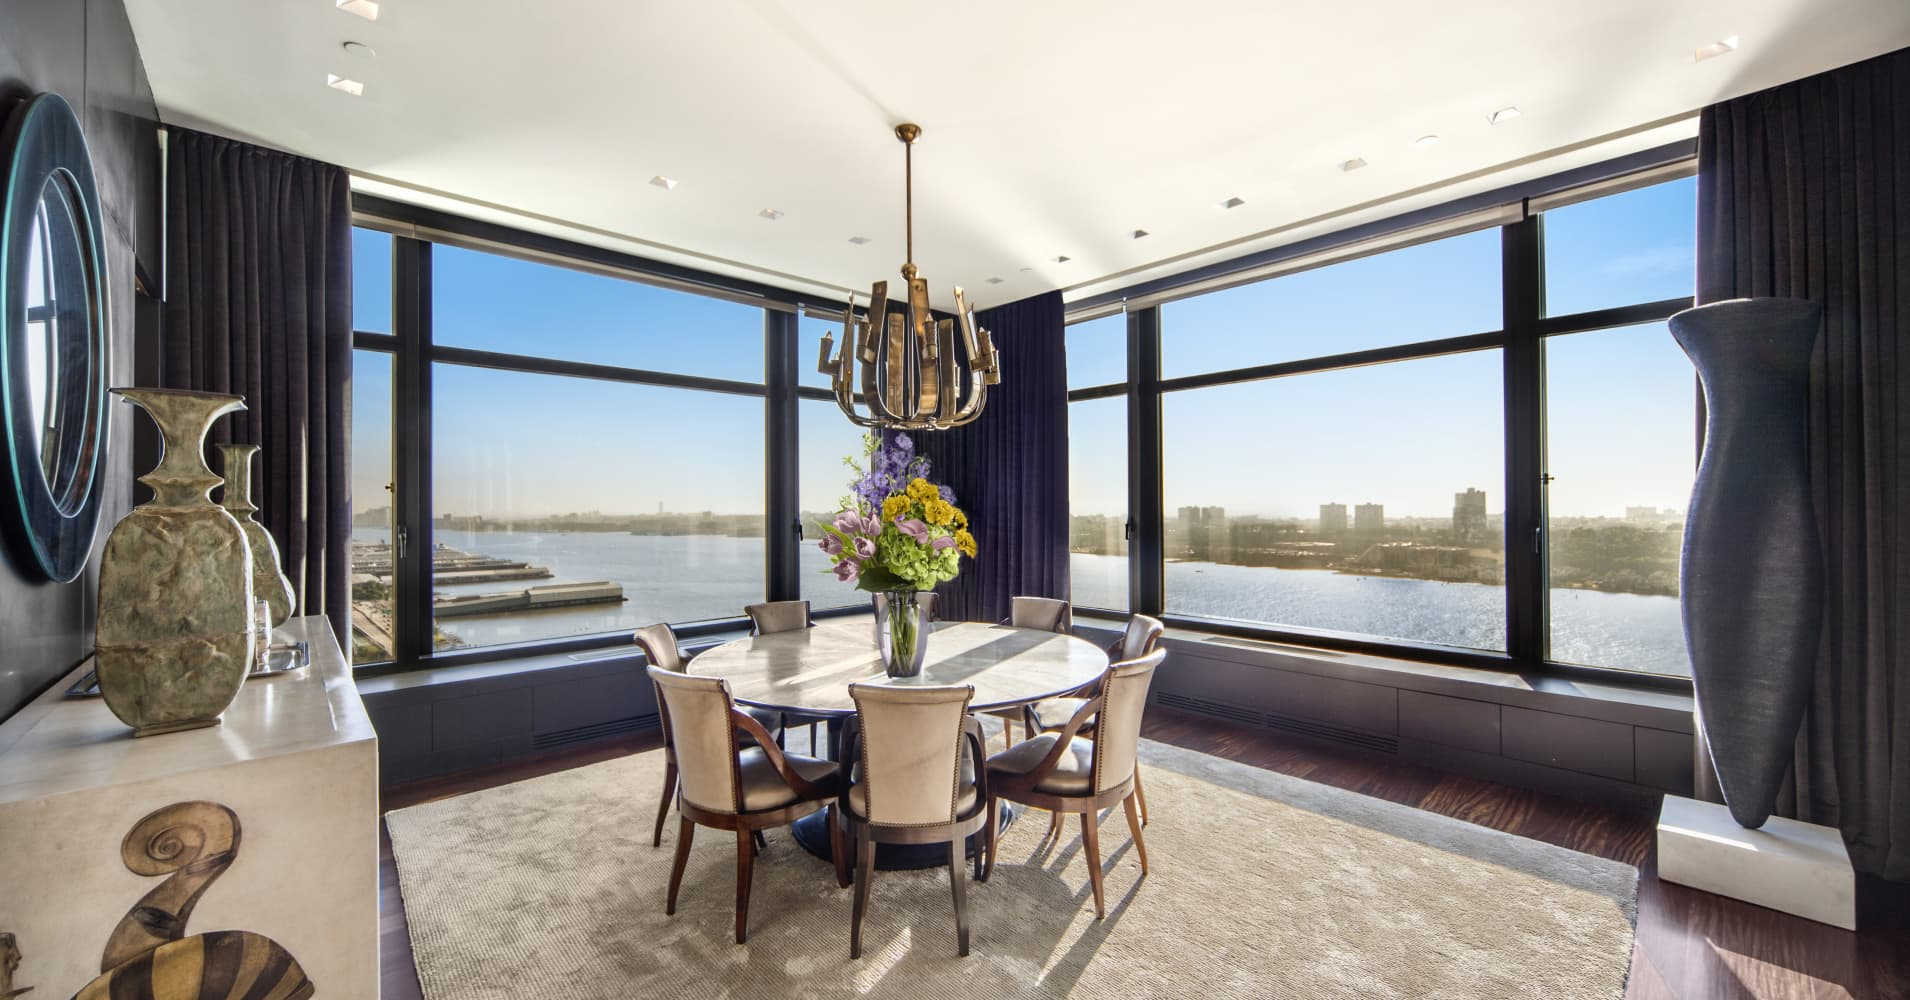 Take a look inside this media mogul's $22 million NYC penthouse